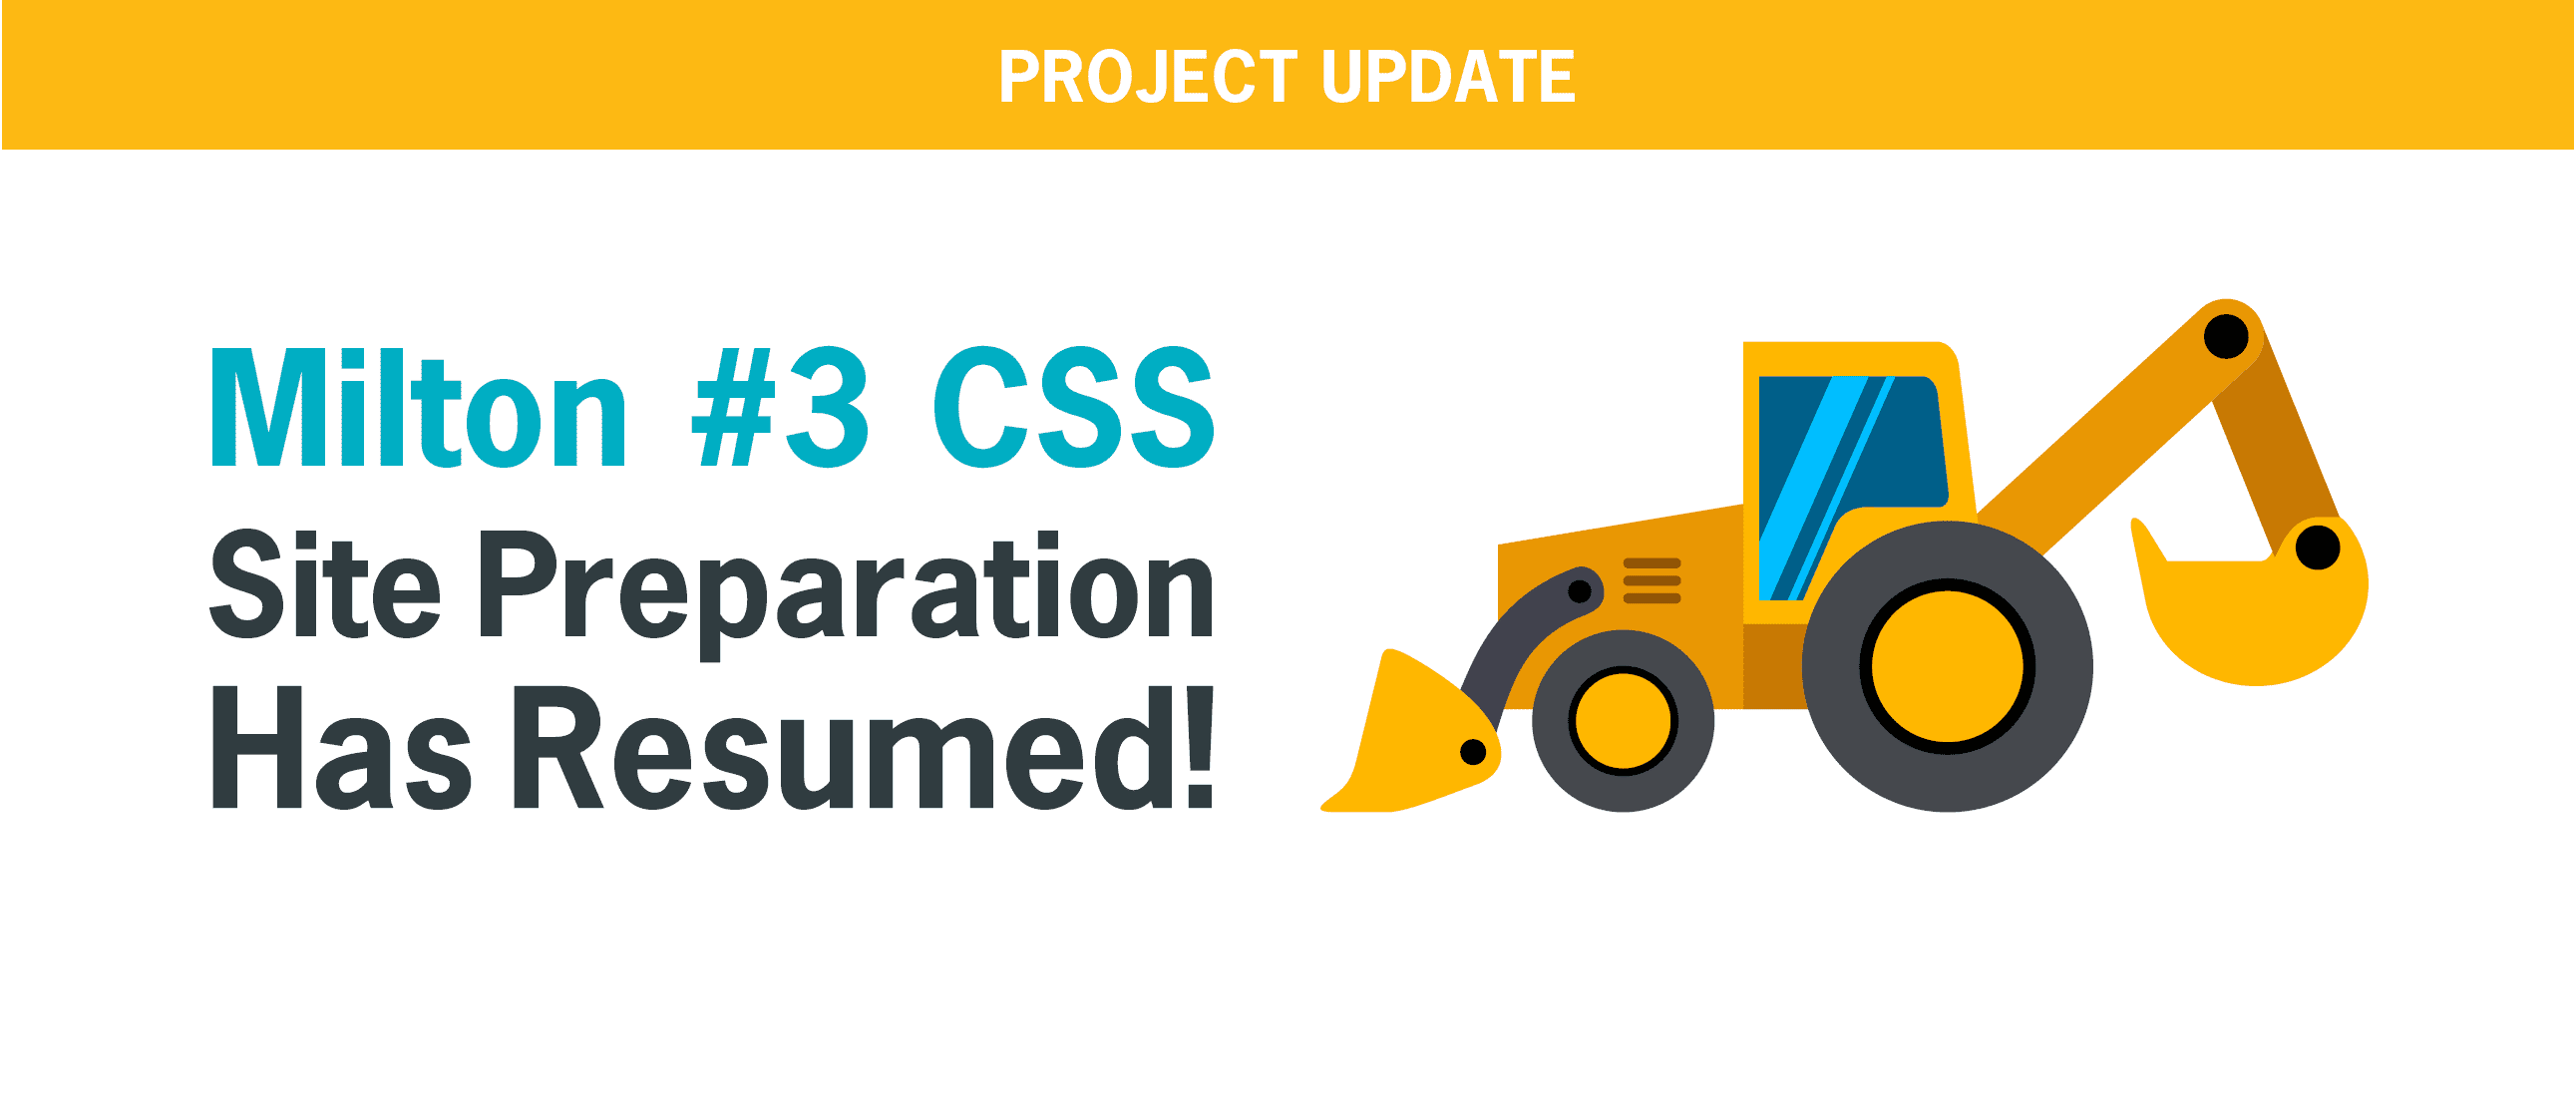 Milton #3 CSS Project Update: Site Preparation Has Resumed!